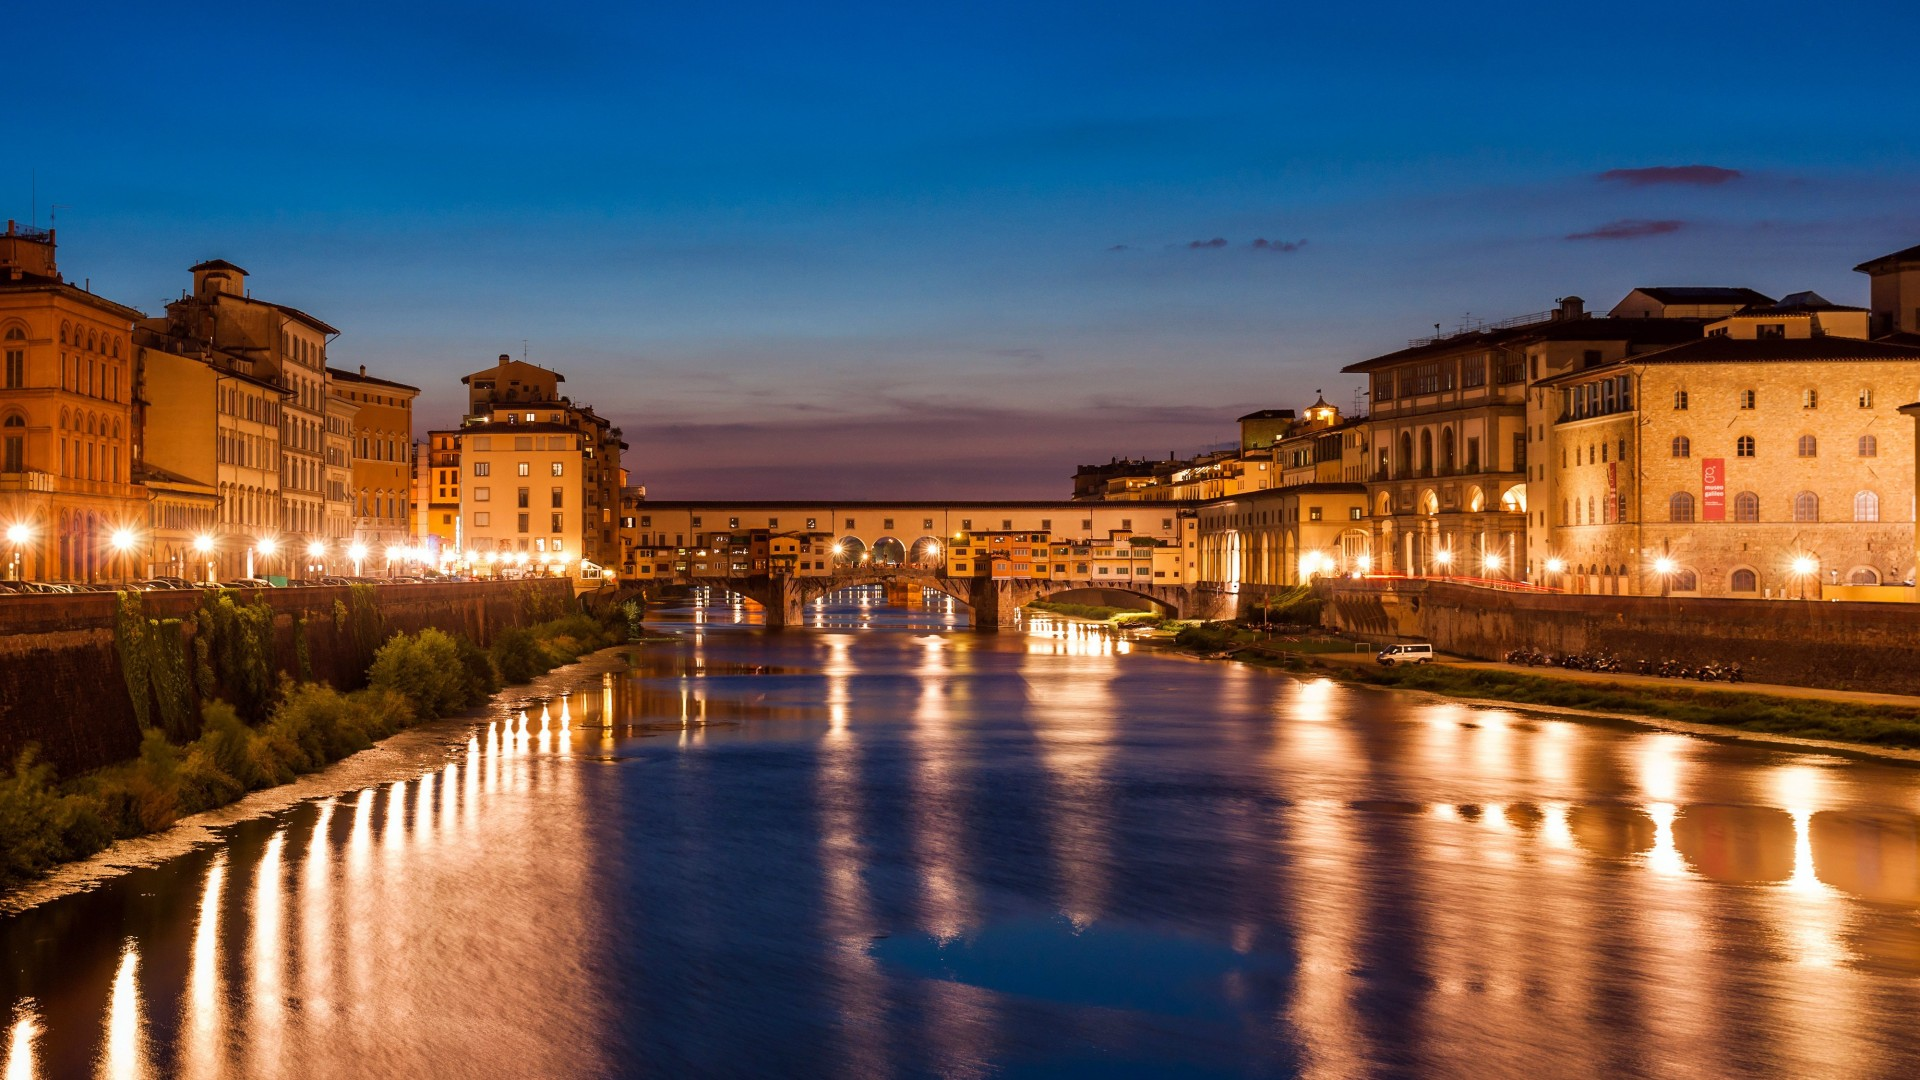 Landscape Wallpaper Hd Wallpaper Florence Italy Night Tourism Travel